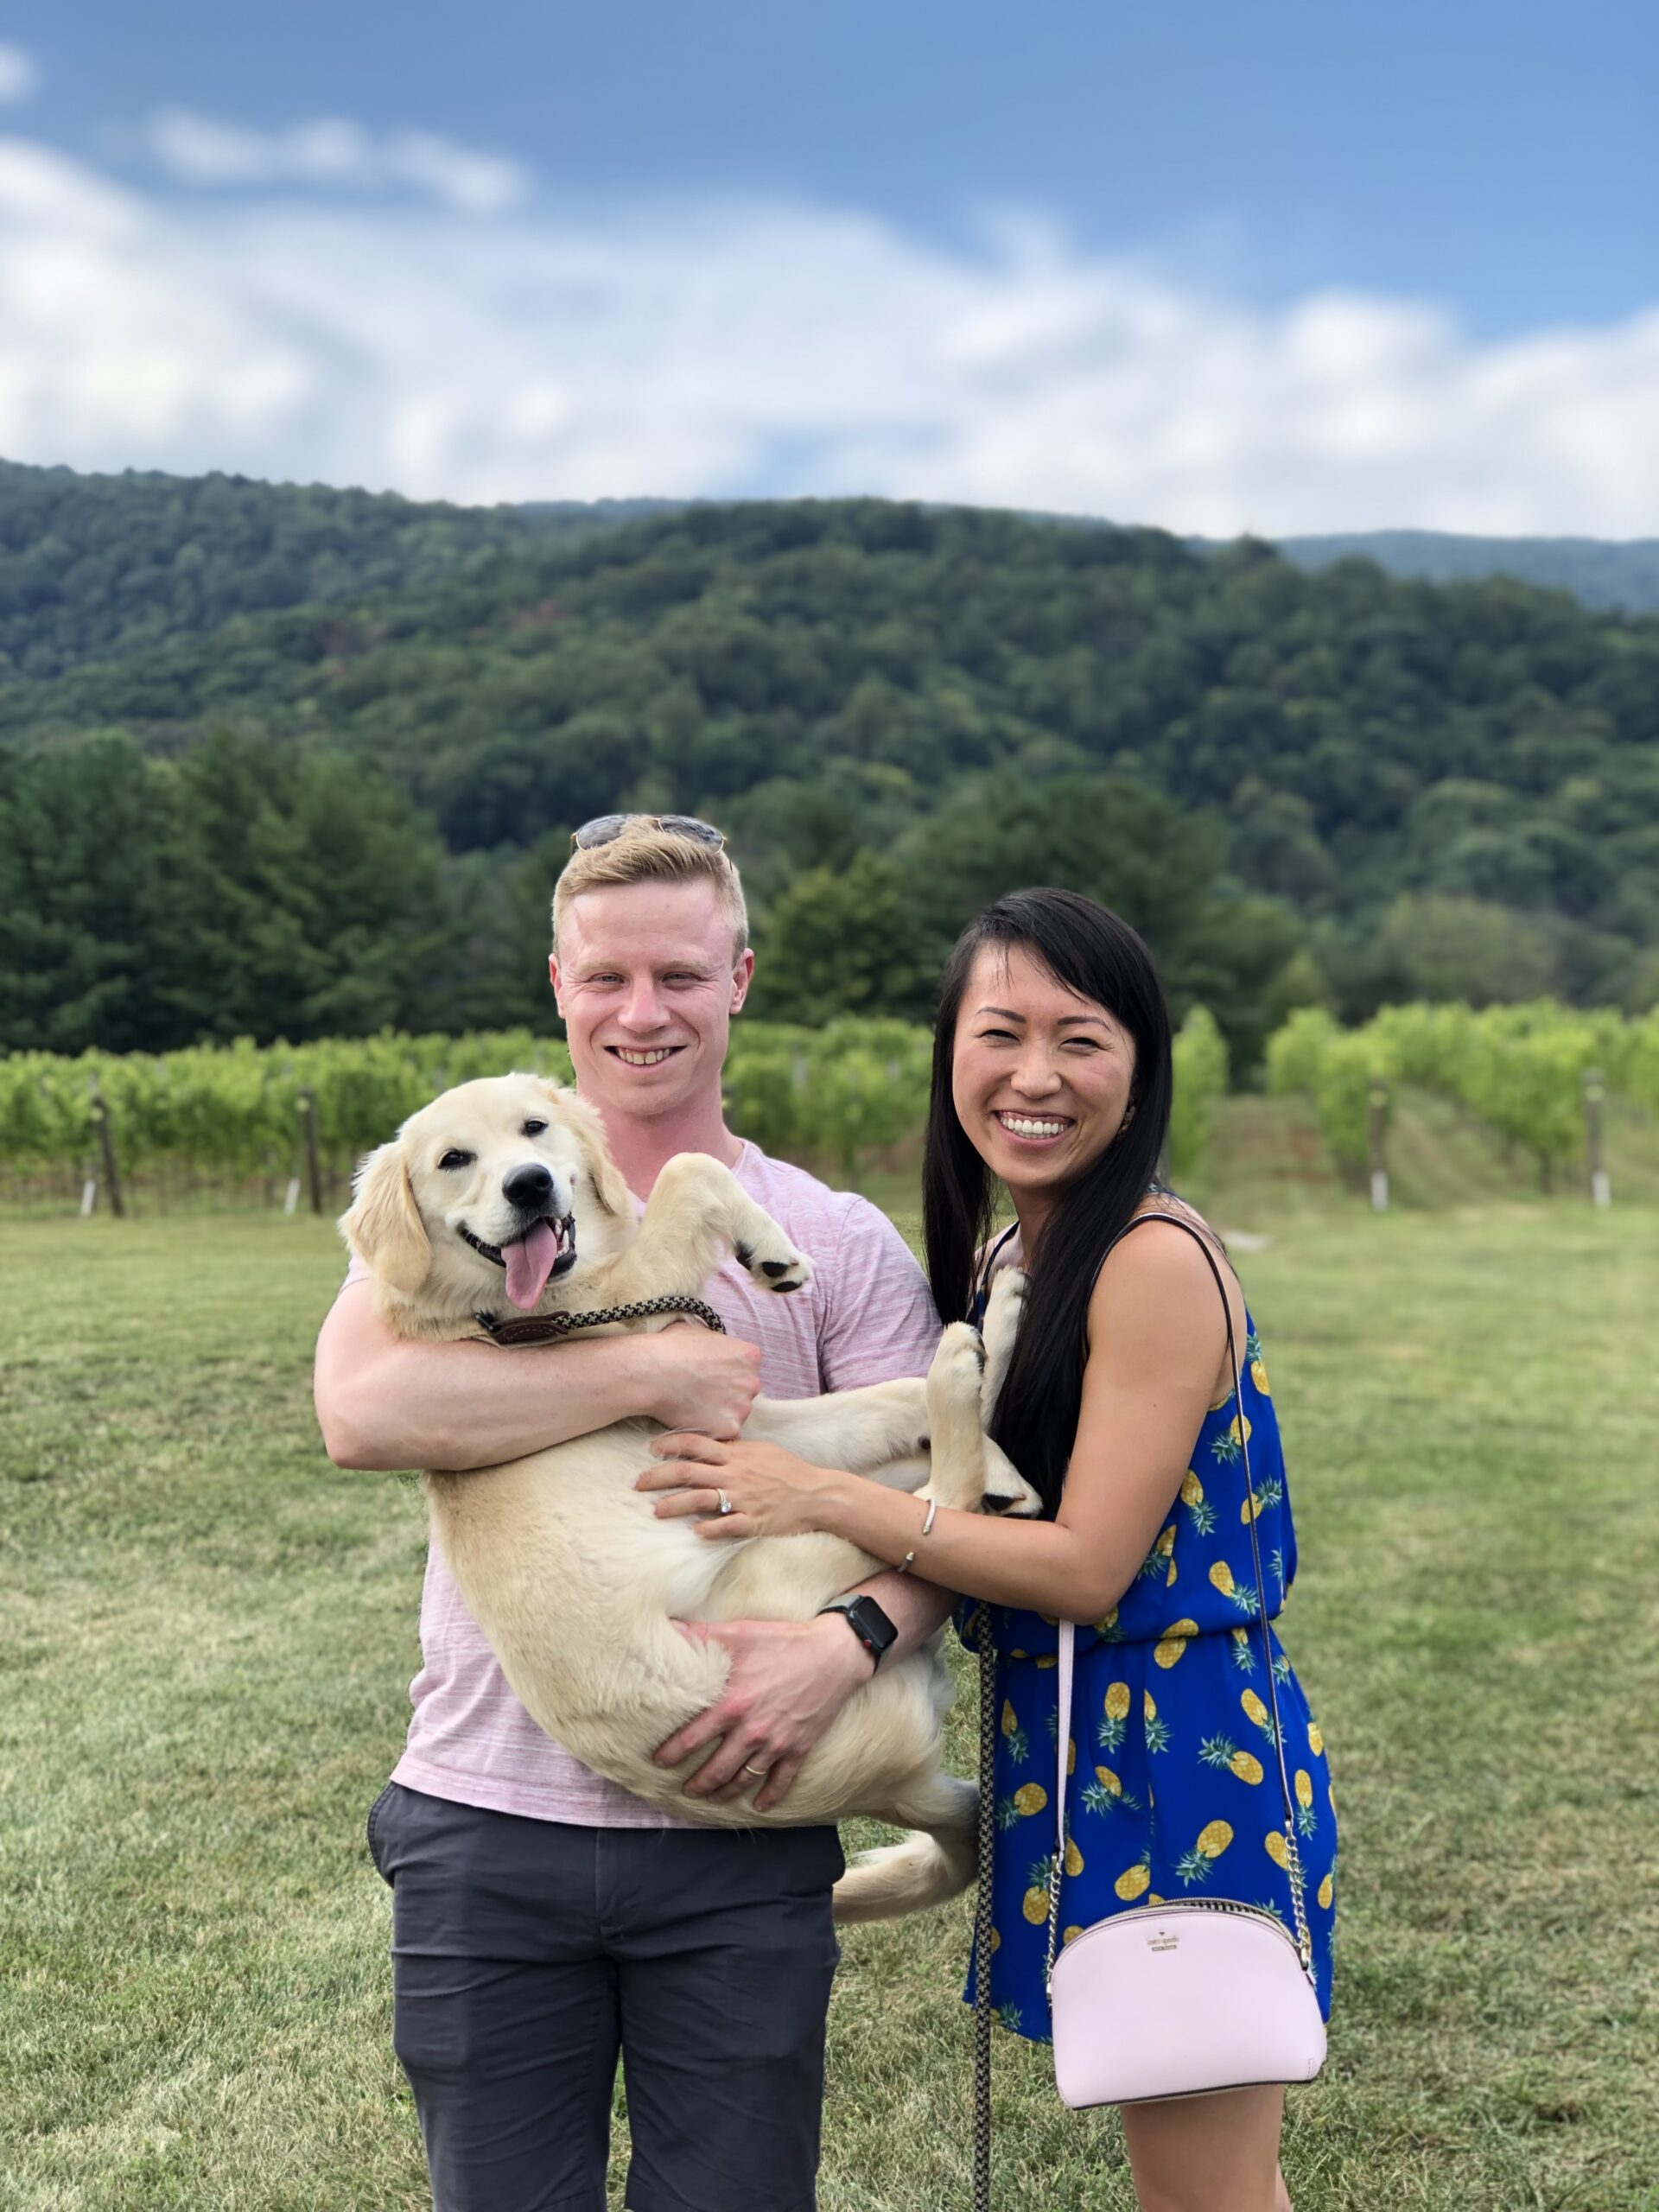 Tom and Shuang holding their Golden Retriever Muffin in front of a mountain